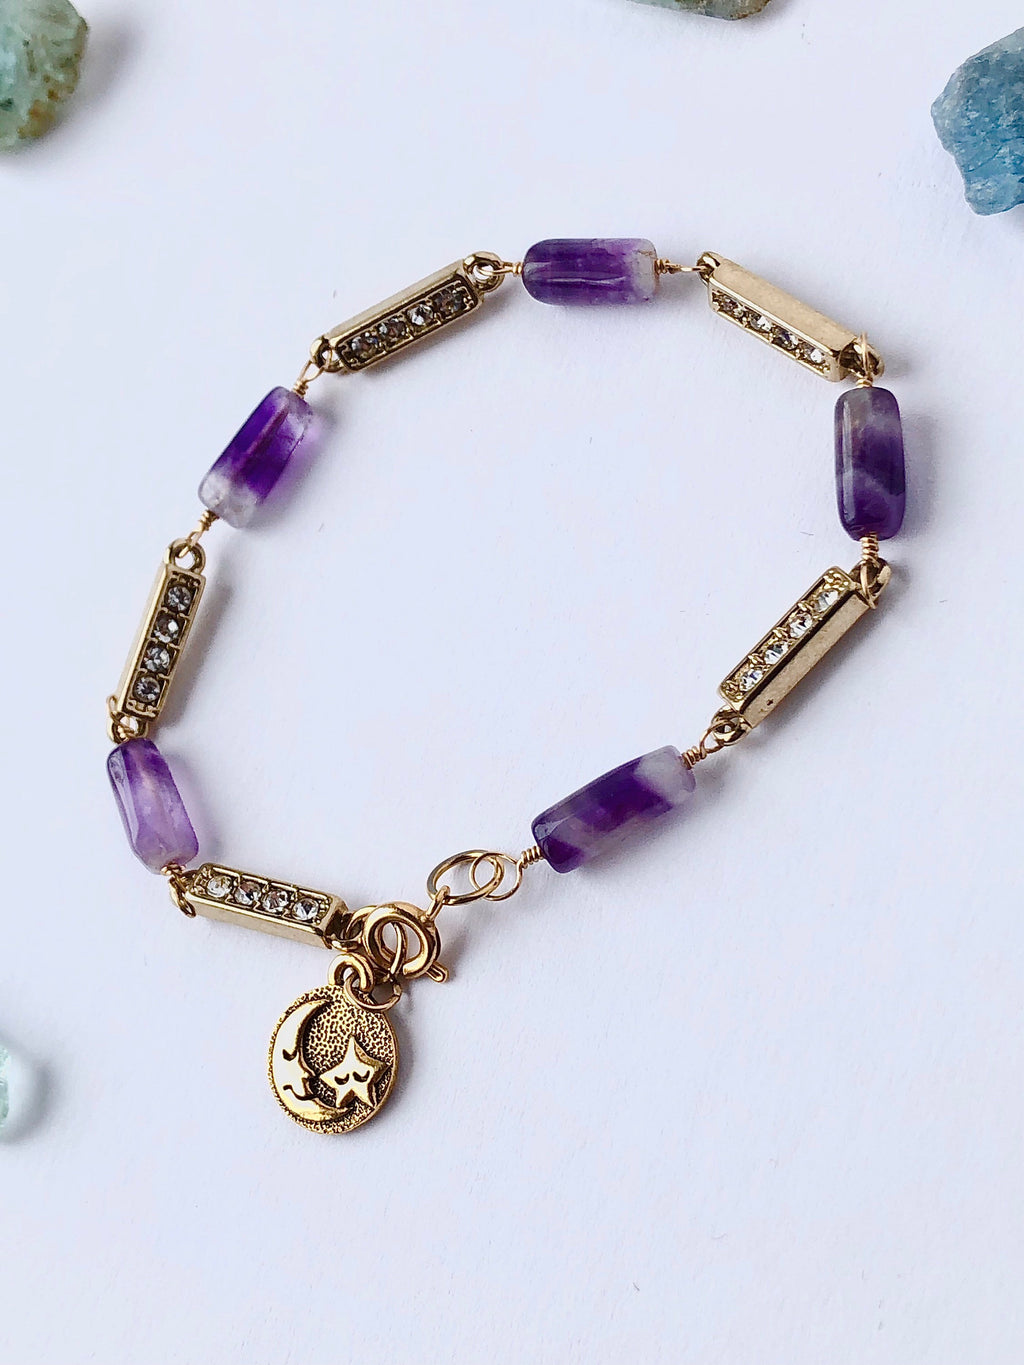 Amethyst Gold Celestial Bracelet / 14k Gold Filled Wire / Recycled Gemstones / Vintage Amethyst / Vintage Rhinestone Brass / Sun Moon Charm